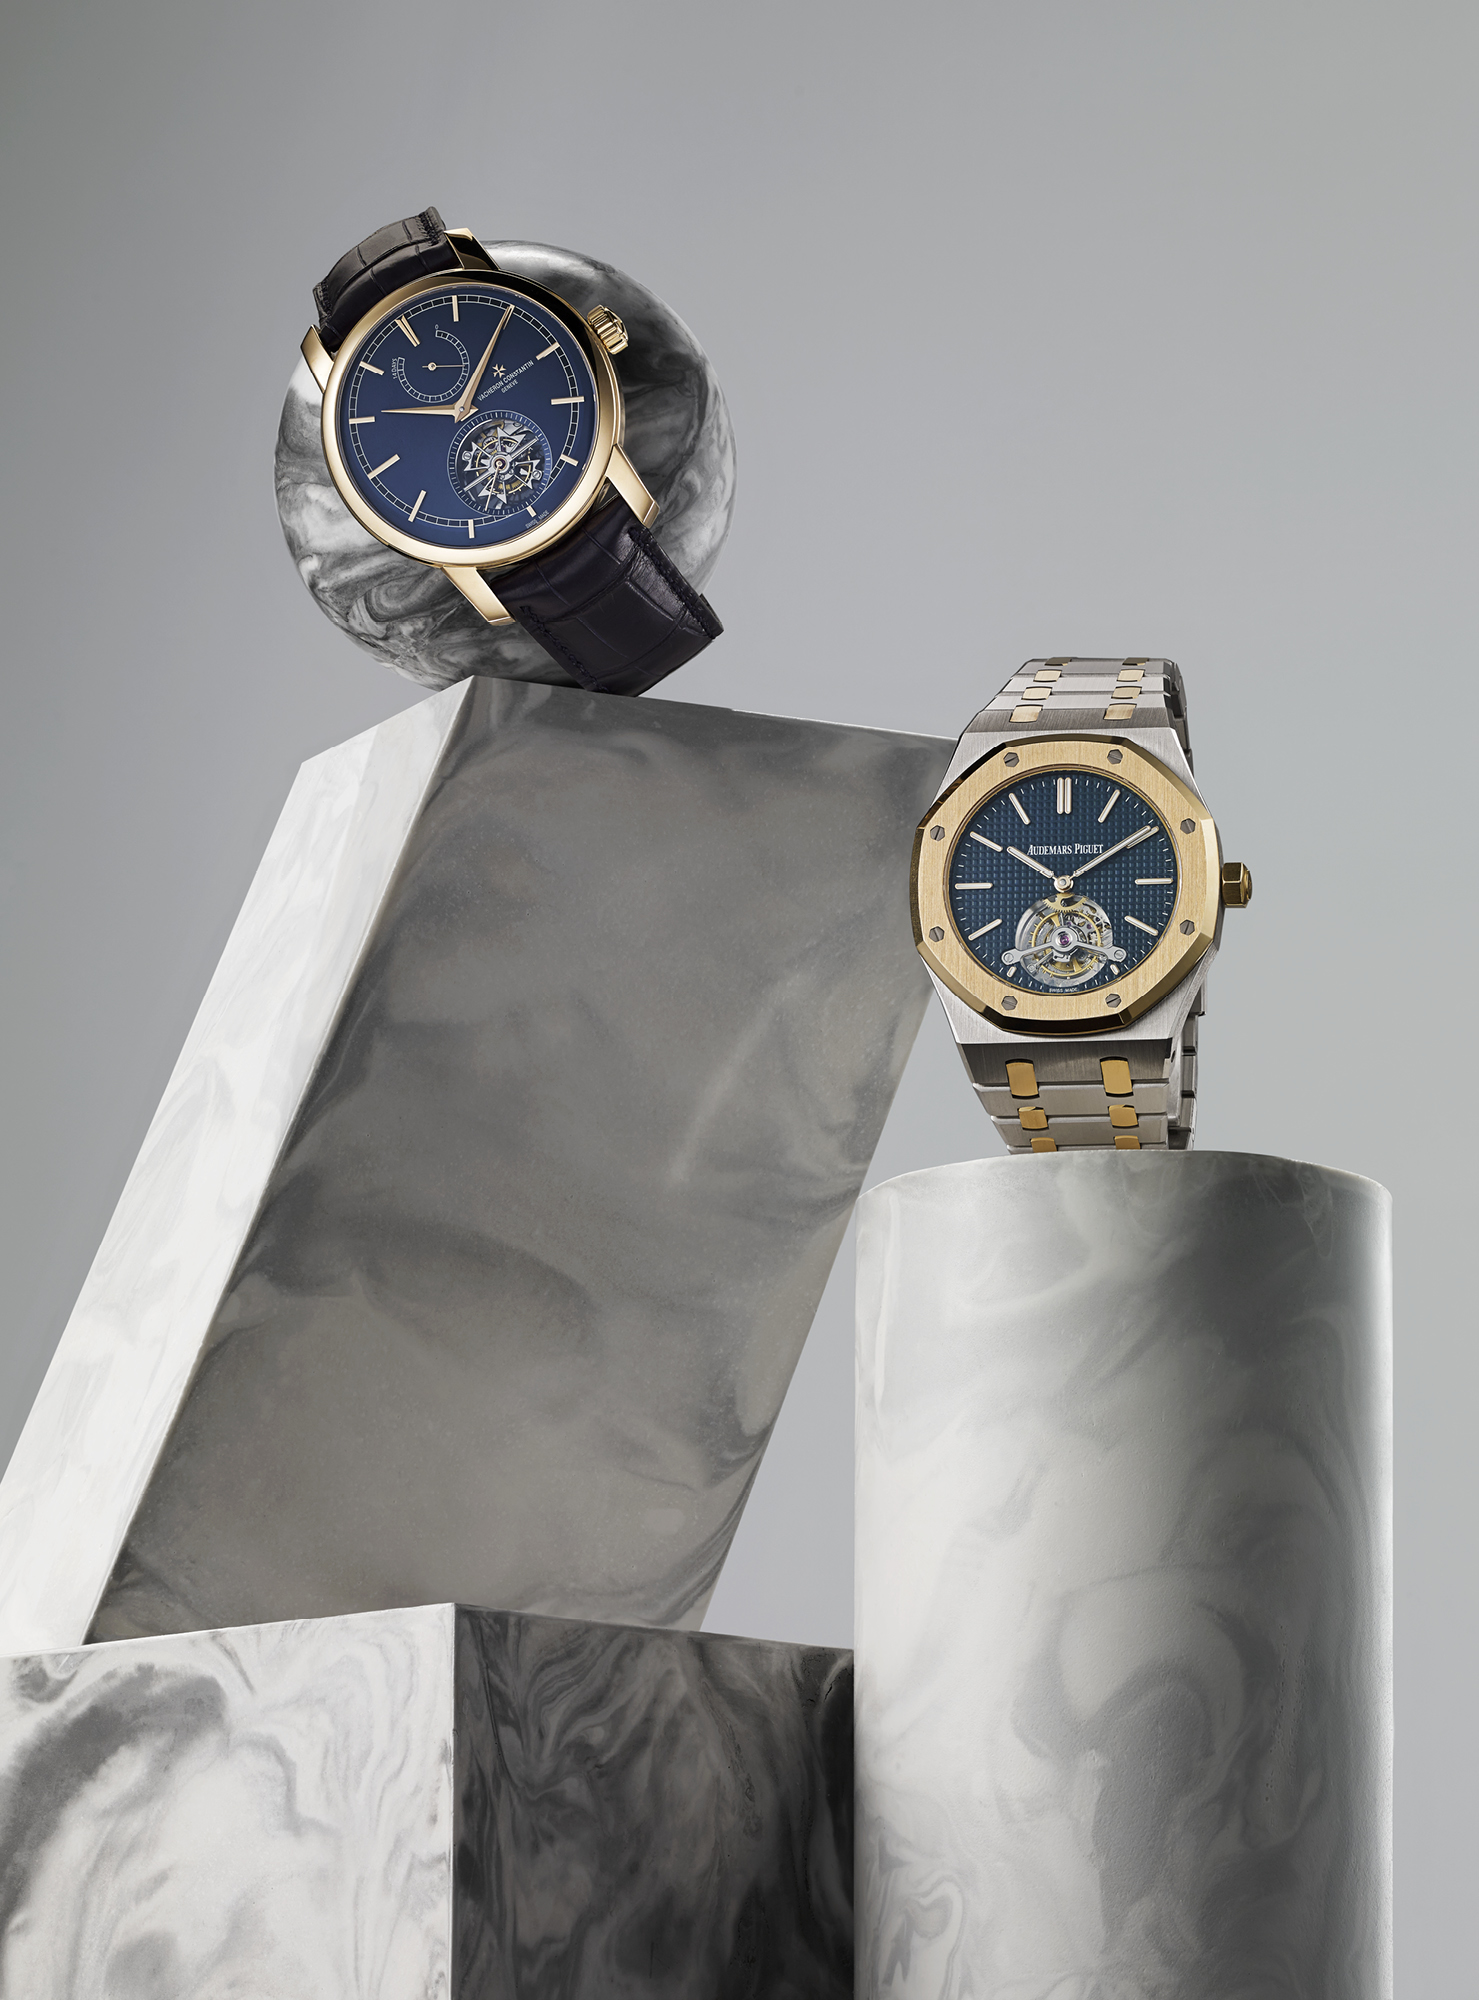 Bucherer Blue Editions - From left: Traditionnelle Tourbillon 42mm rose gold manual, £238,000, VACHERON CONSTANTIN; Royal Oak Tourbillon 41mm stainless steel, £131,100, AUDEMARS PIGUET